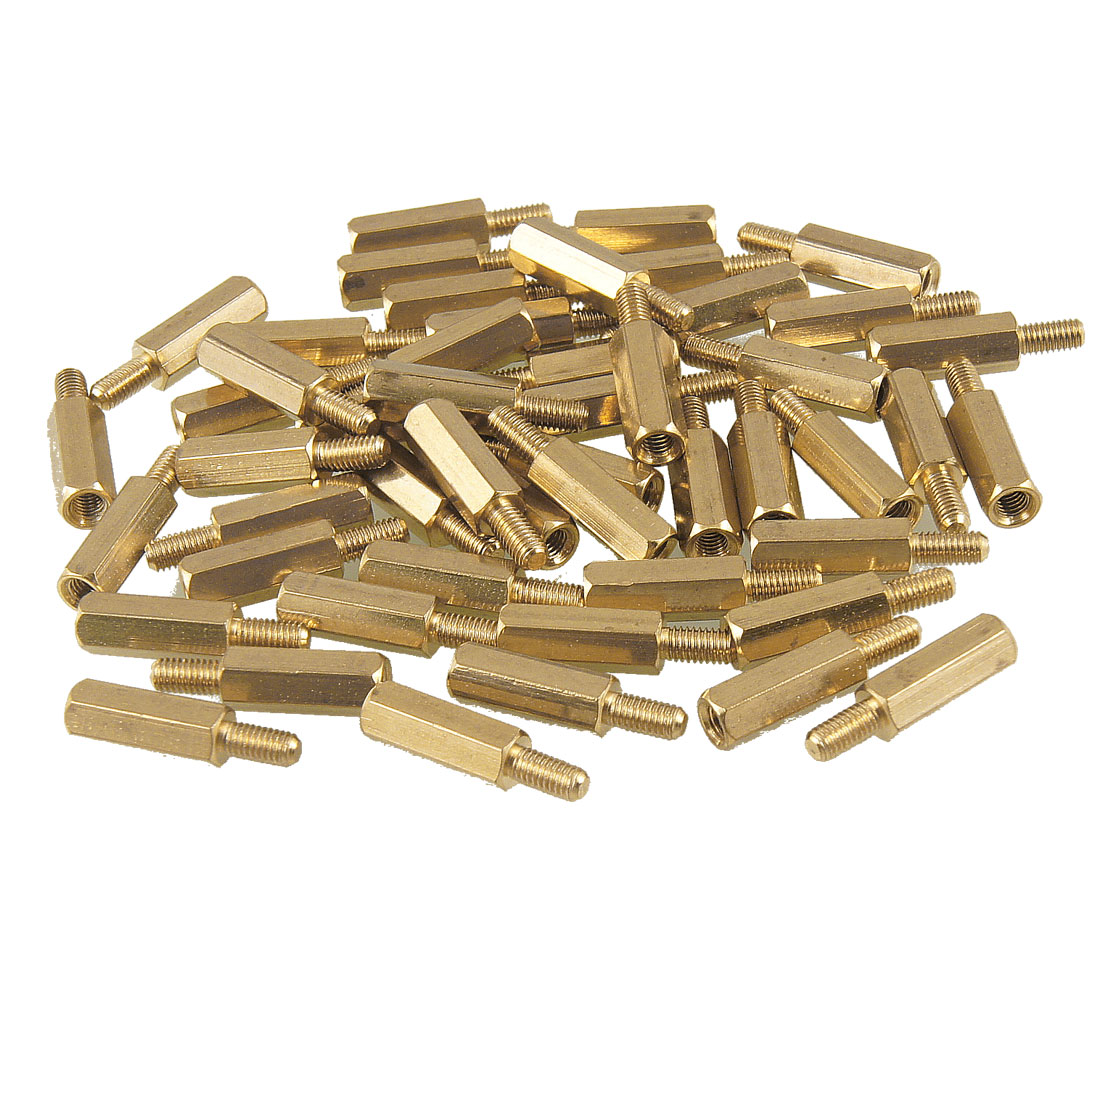 50 Pcs M3 Male x M3 Female 13mm Body Hexagonal Thread PCB Standoff Spacer